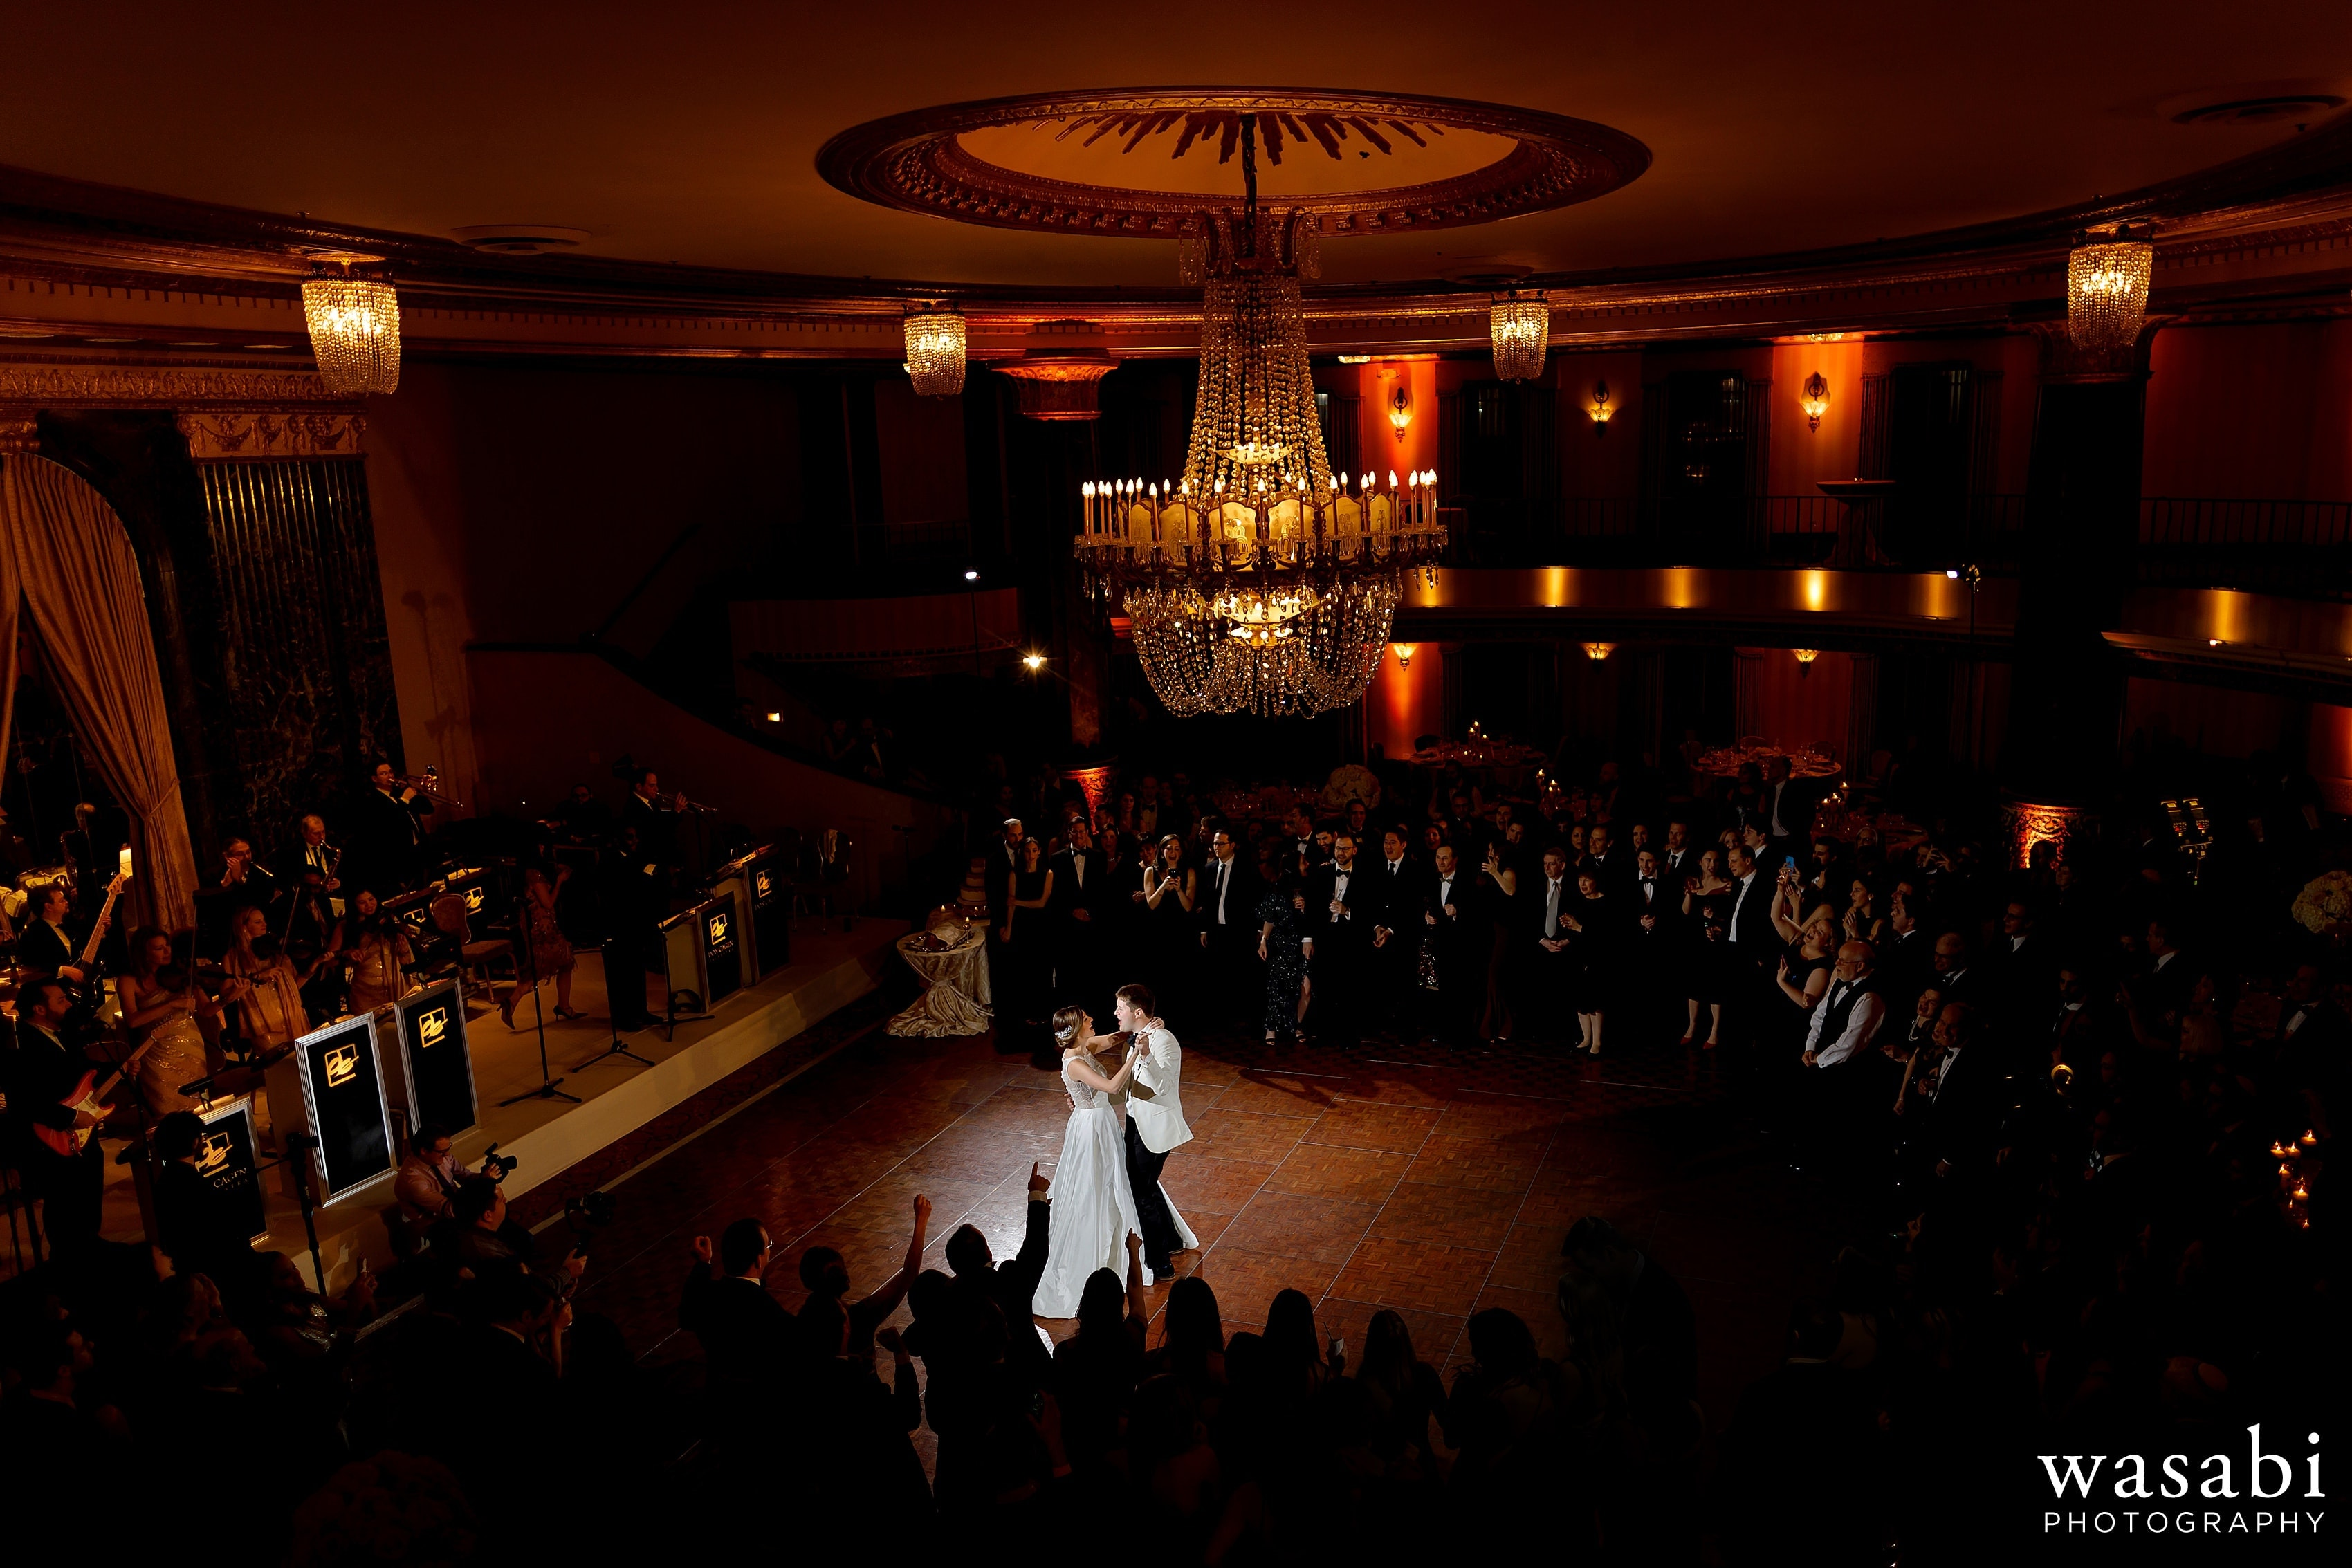 wide angle showing the whole ballroom of bride and groom's first dance during Jewish wedding reception at InterContinental Chicago Magnificent Mile Hotel